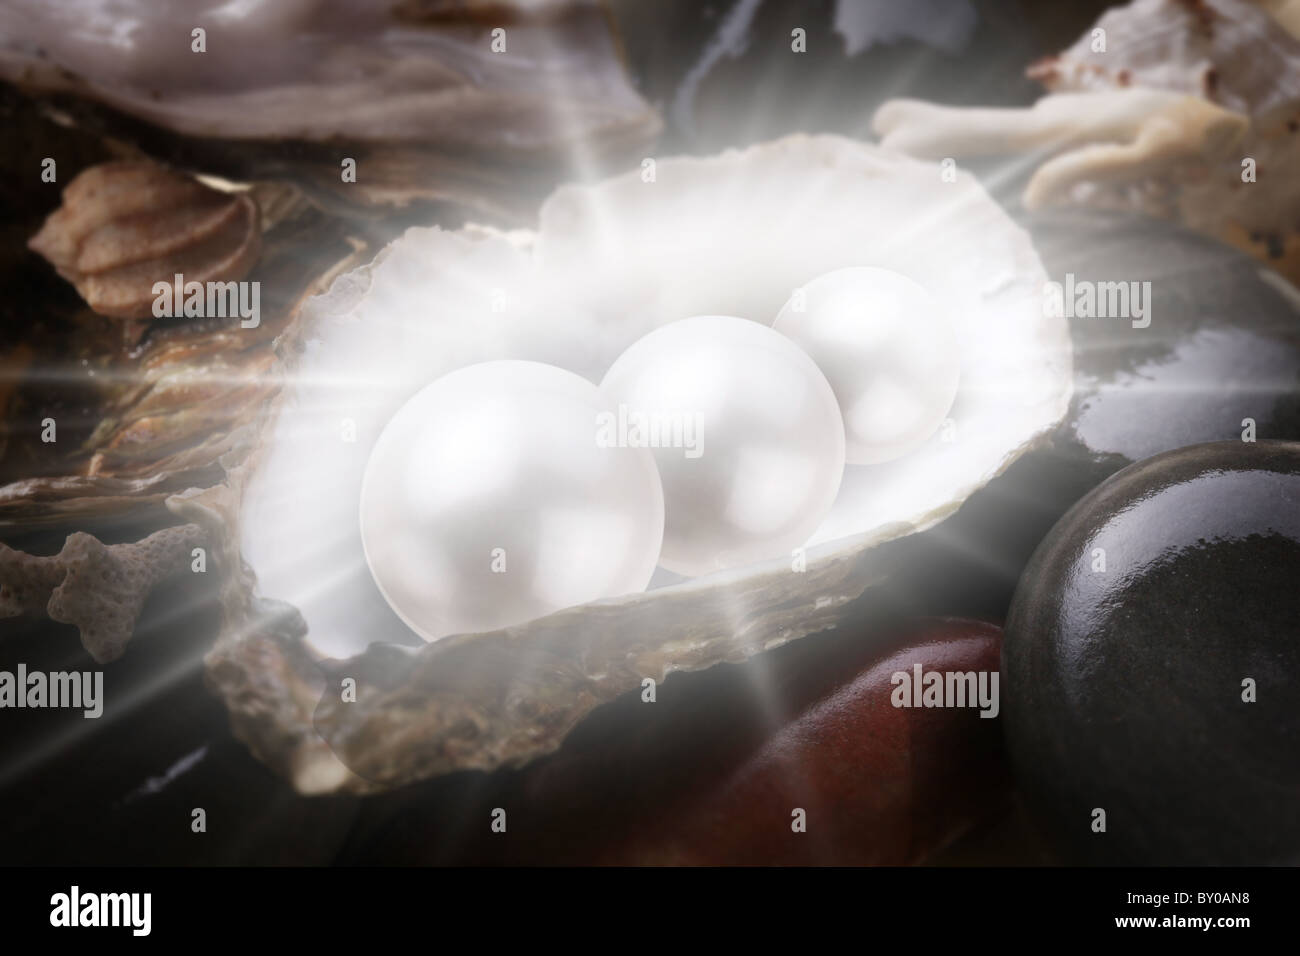 Image of three pearls in the shell on wet pebbles. - Stock Image